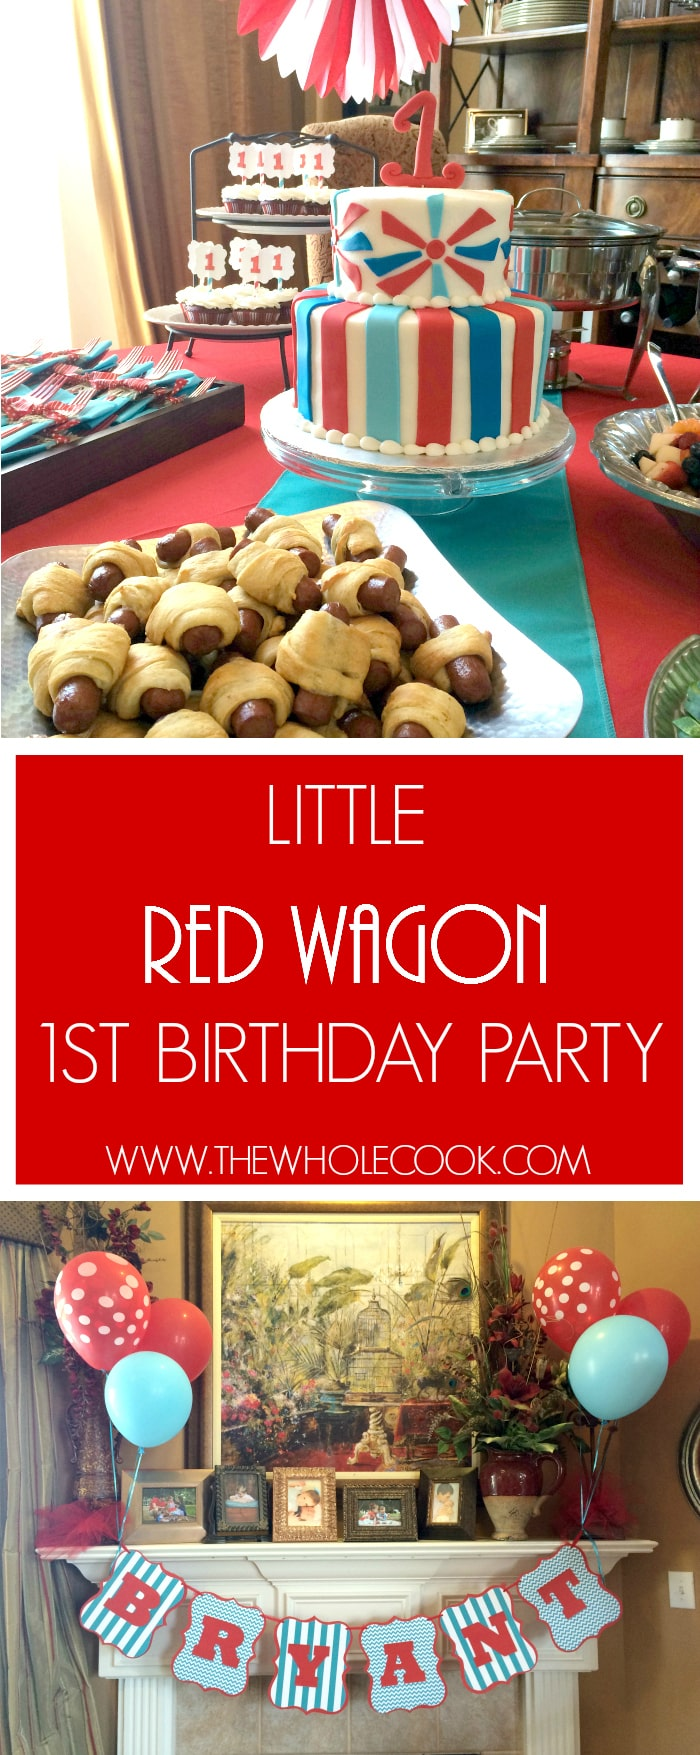 Little Red Wagon 1st Birthday Party The Whole Cook